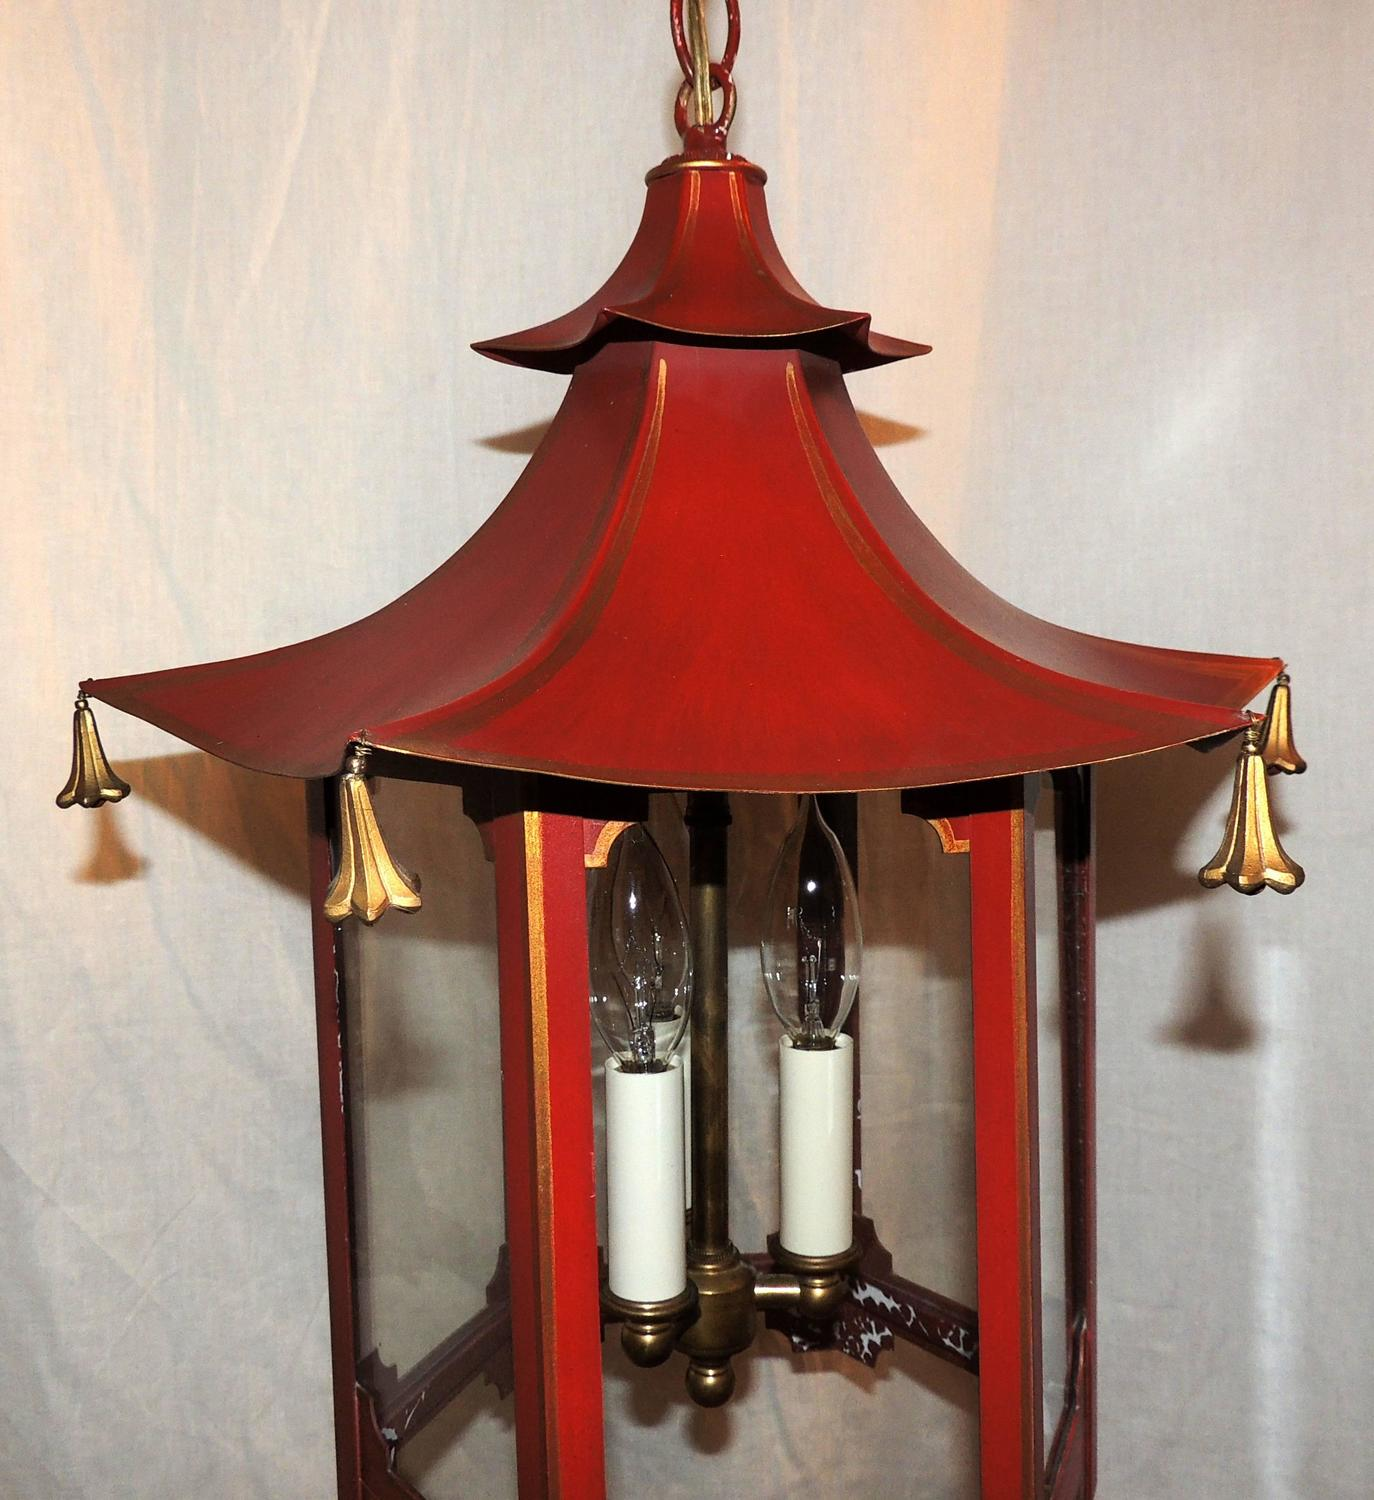 Vintage Chinoiserie Red Gold Gilt Pagoda Lantern Fixture